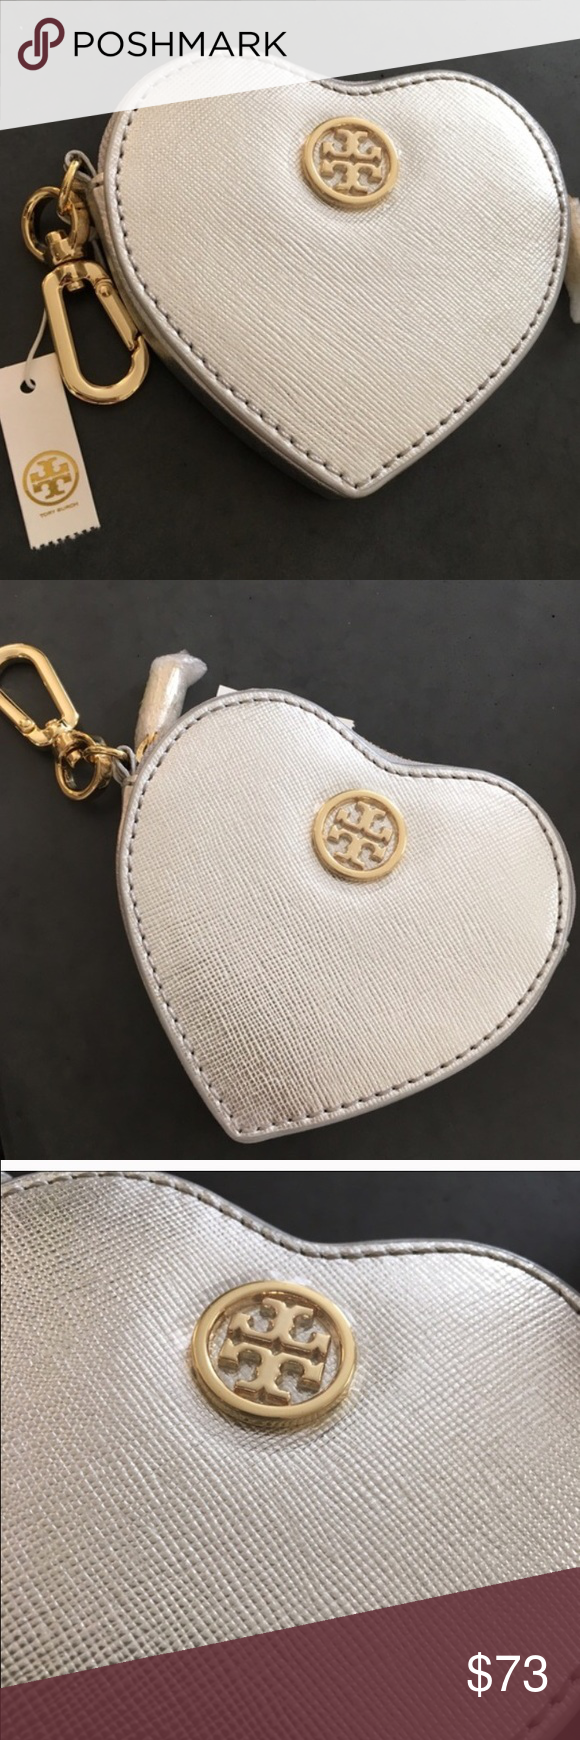 ab2dfe13b9f Tory Burch Heart Key Fob Coin Purse Saffiano leather Imported Zip closure   lined Key ring attached  logo plaque on front 4